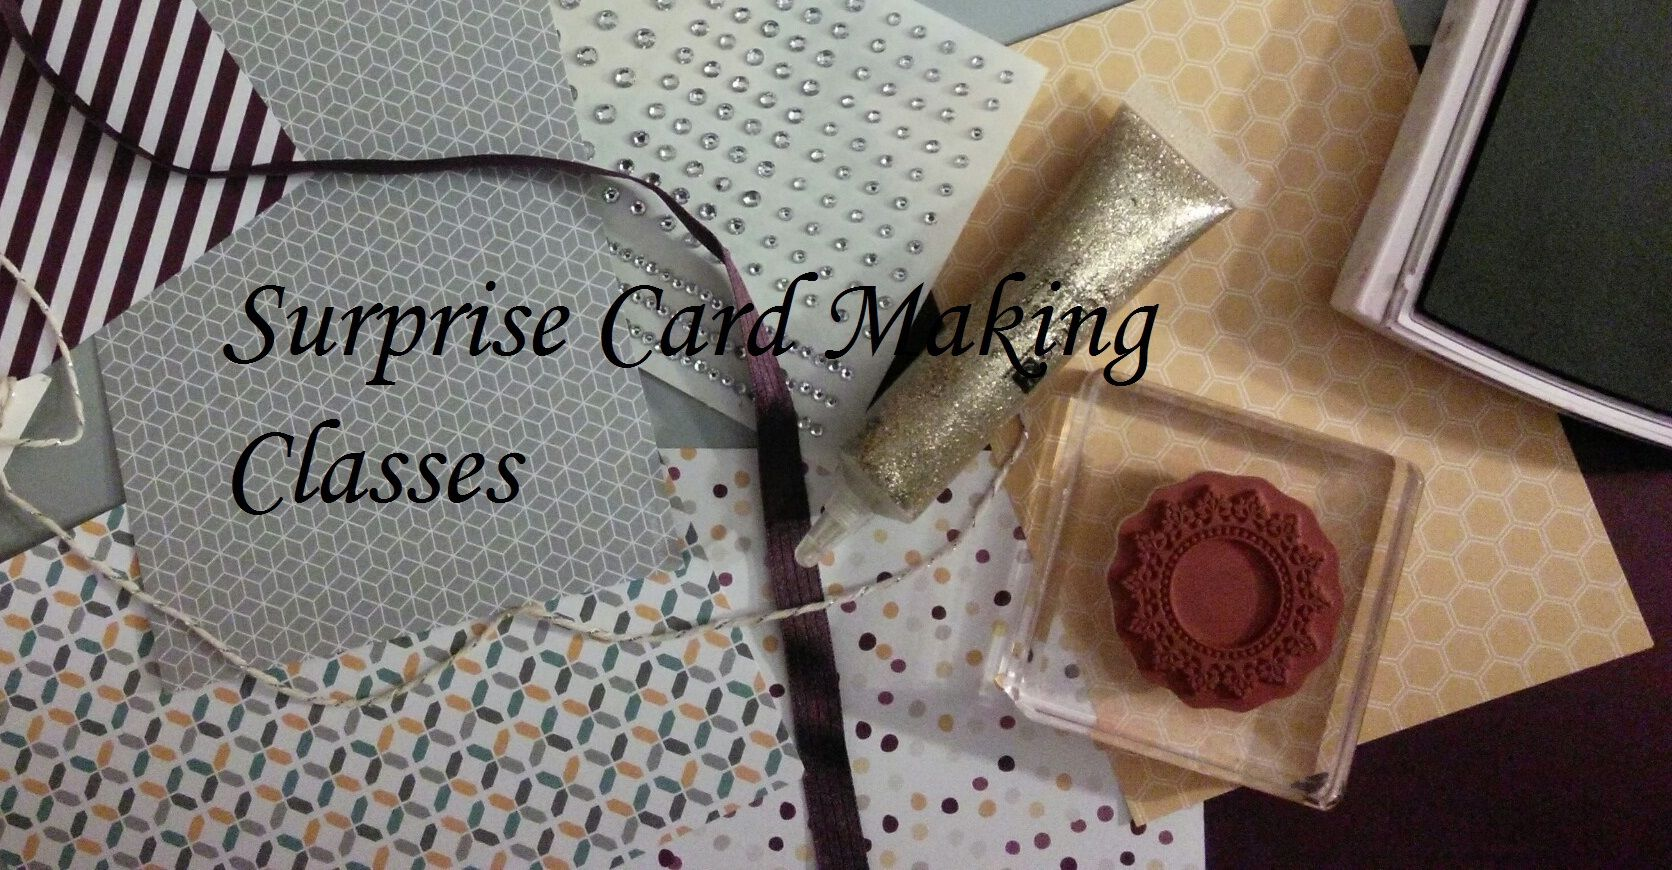 Surprise Card Making Classes